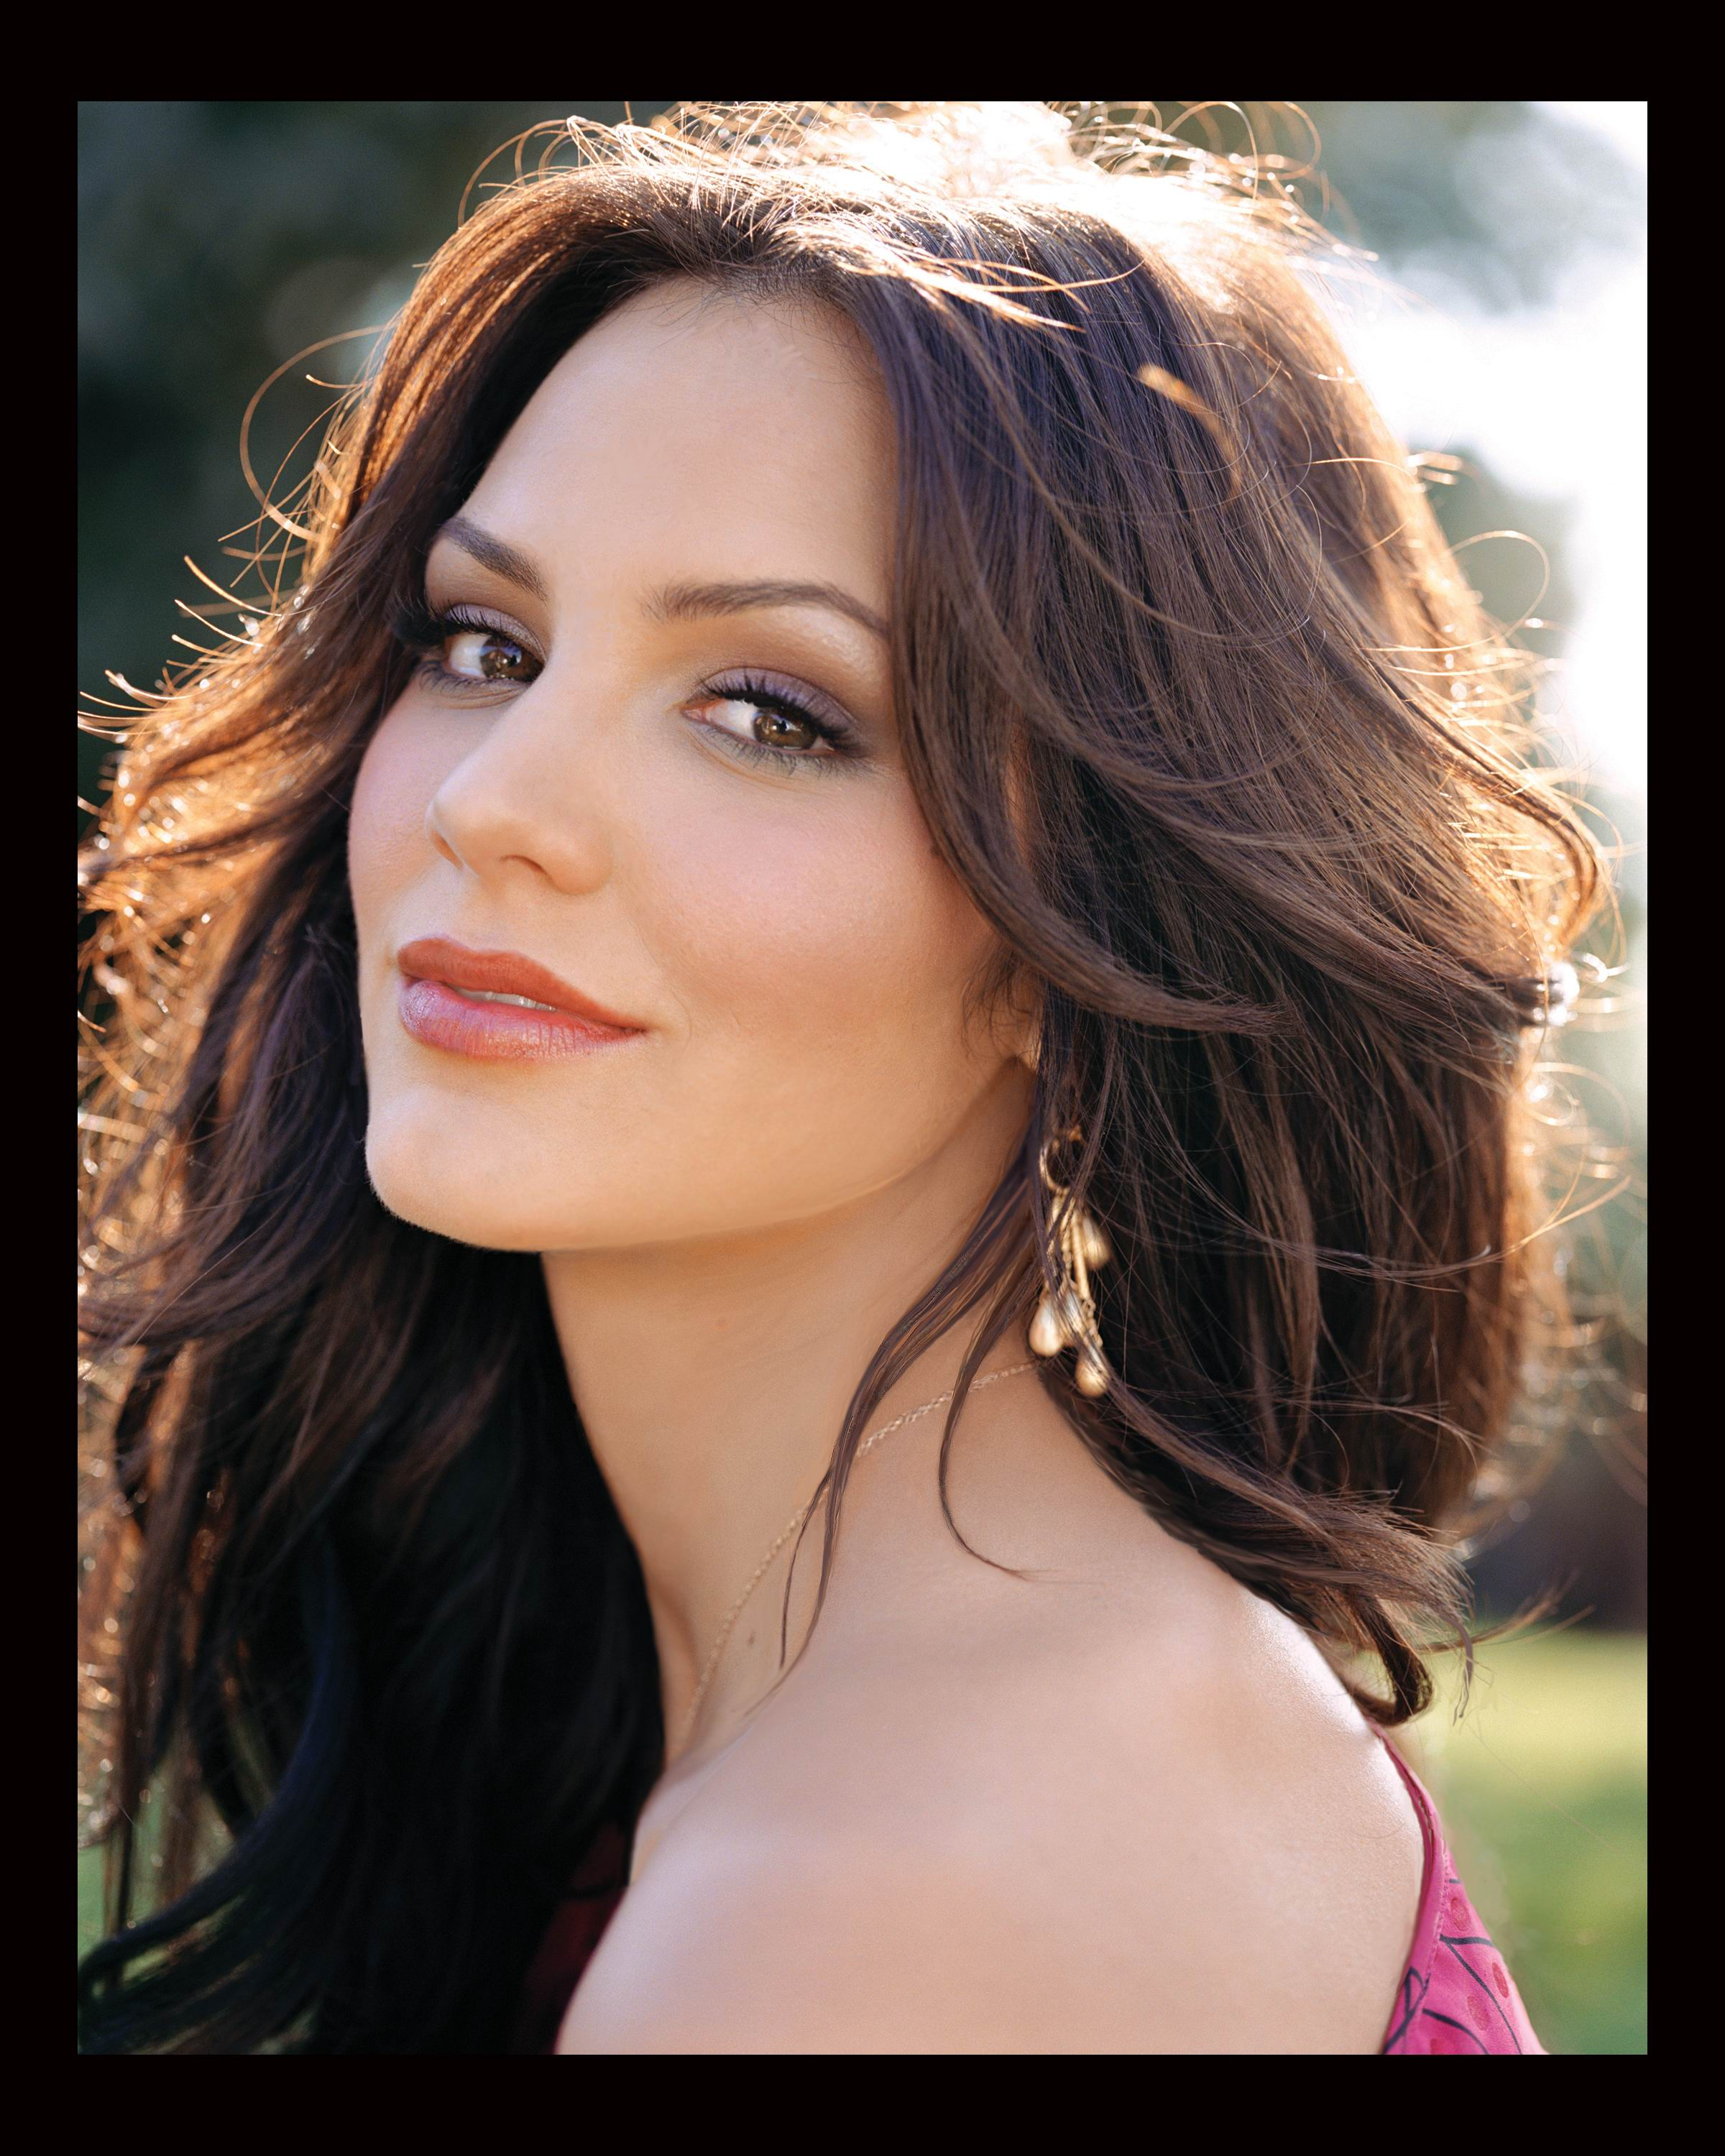 10 Things You Need To Know Before Hiring A Web Designer: Katherine Mcphee Layrics For Terrified Mp3